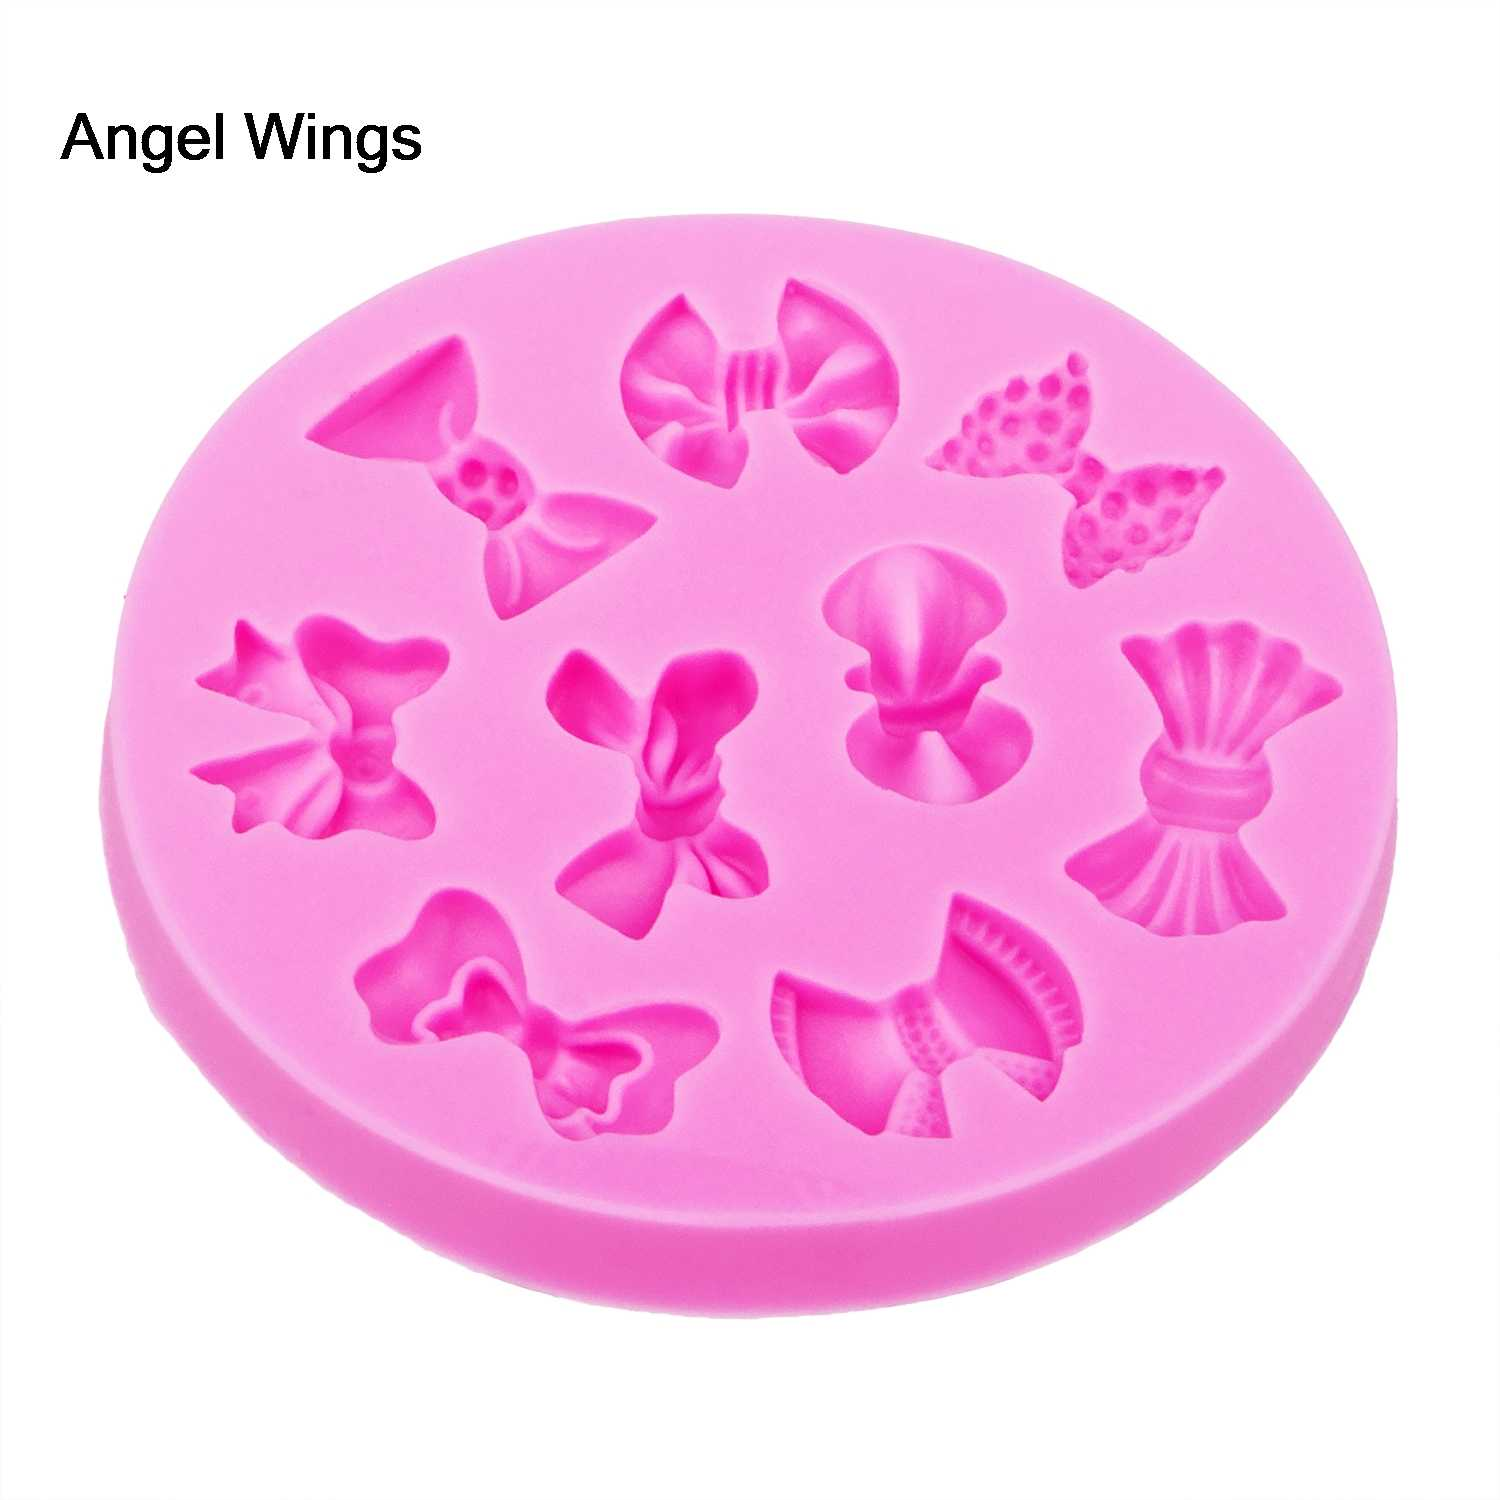 Angel Wings Food grade 3D fondant cake silicone mold bow-knot polymer clay chocolate pastry candy making decoration tools F1201